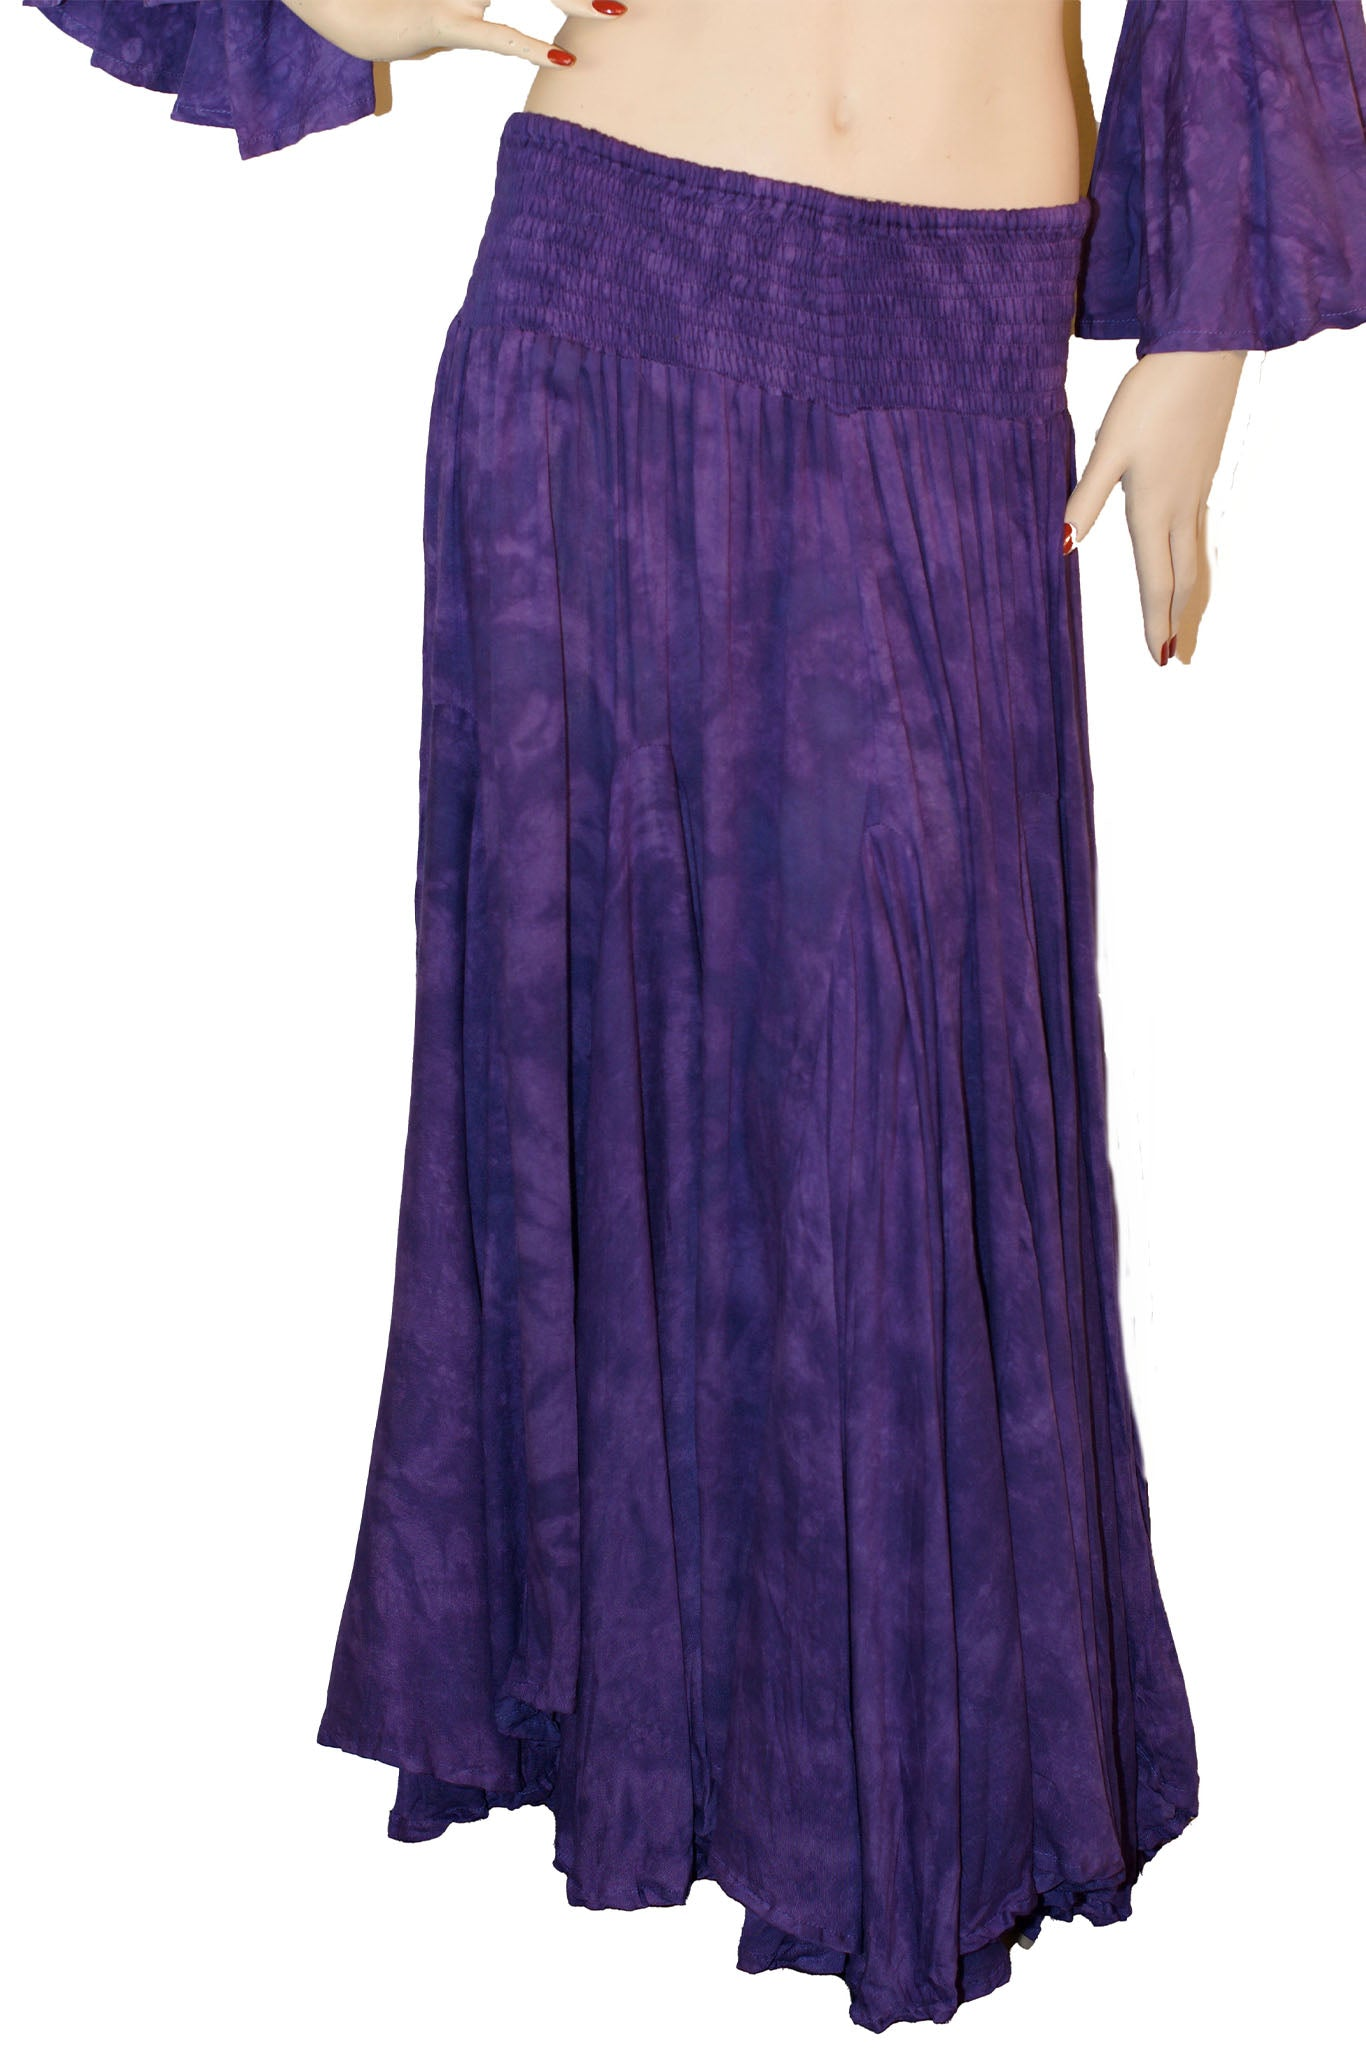 Renaissance Skirt Half Circle Belly Dance Skirt Purple